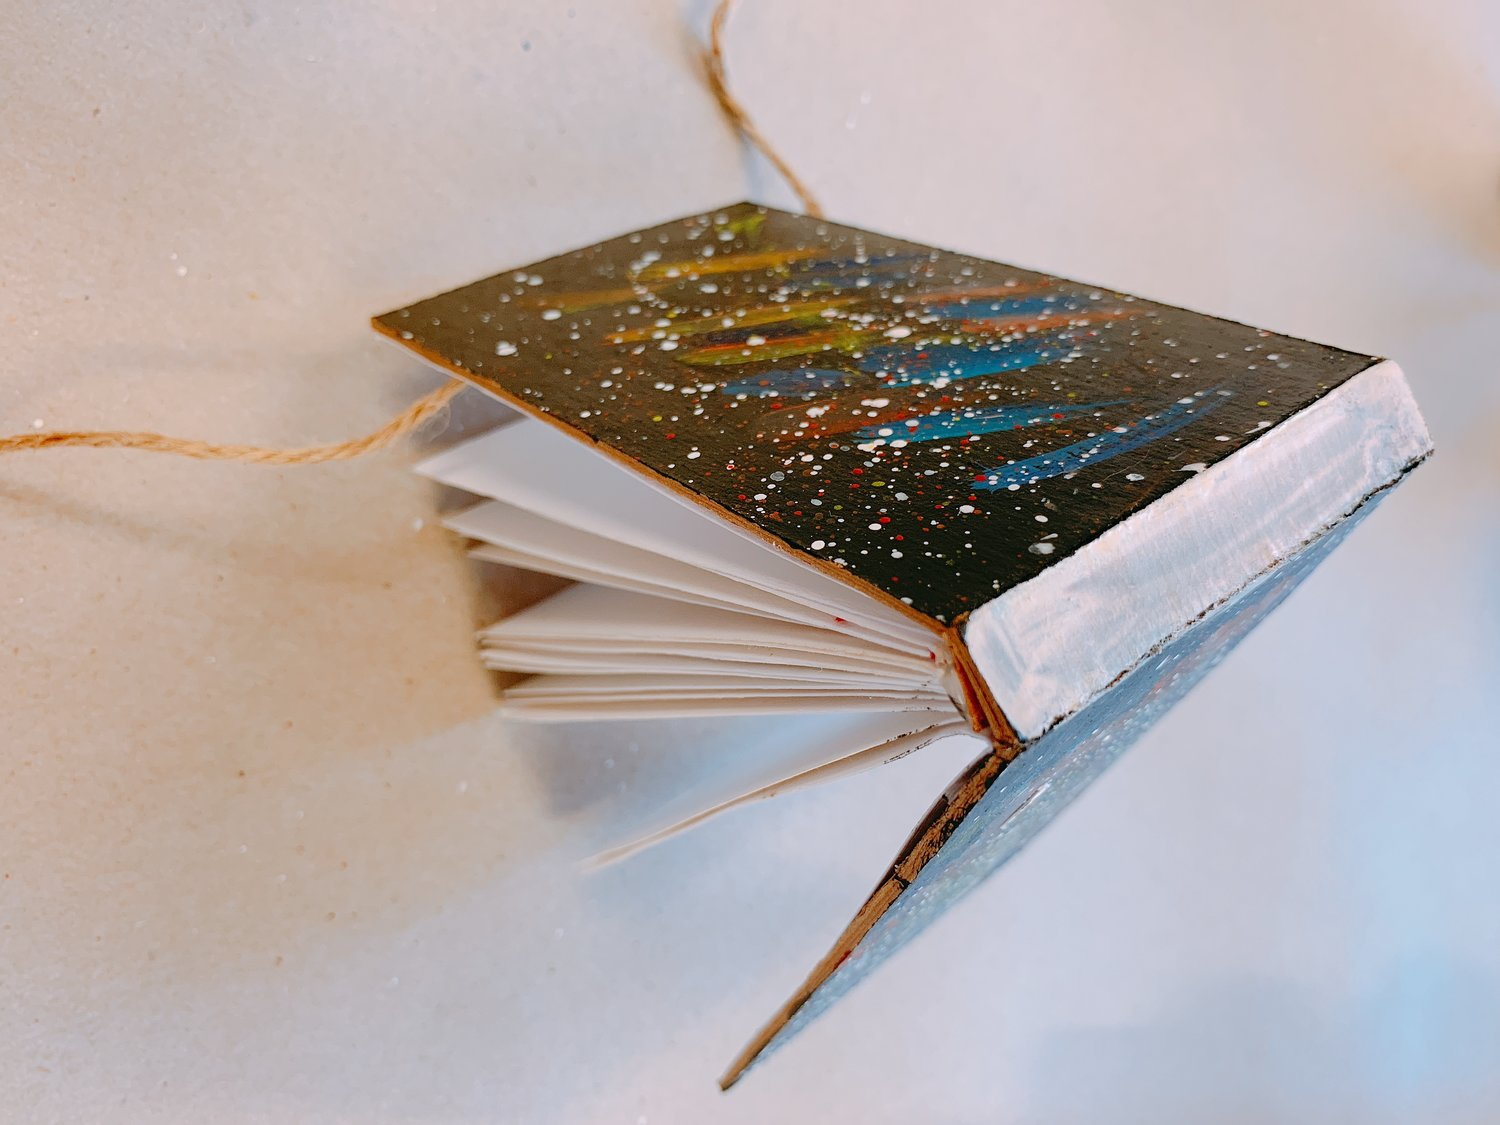 BOOK ILLUSTRATION/BINDING CLASS - Students will illustrate their own books in this class and also learn how to kettle stitch bind their books and design their own art notebooks